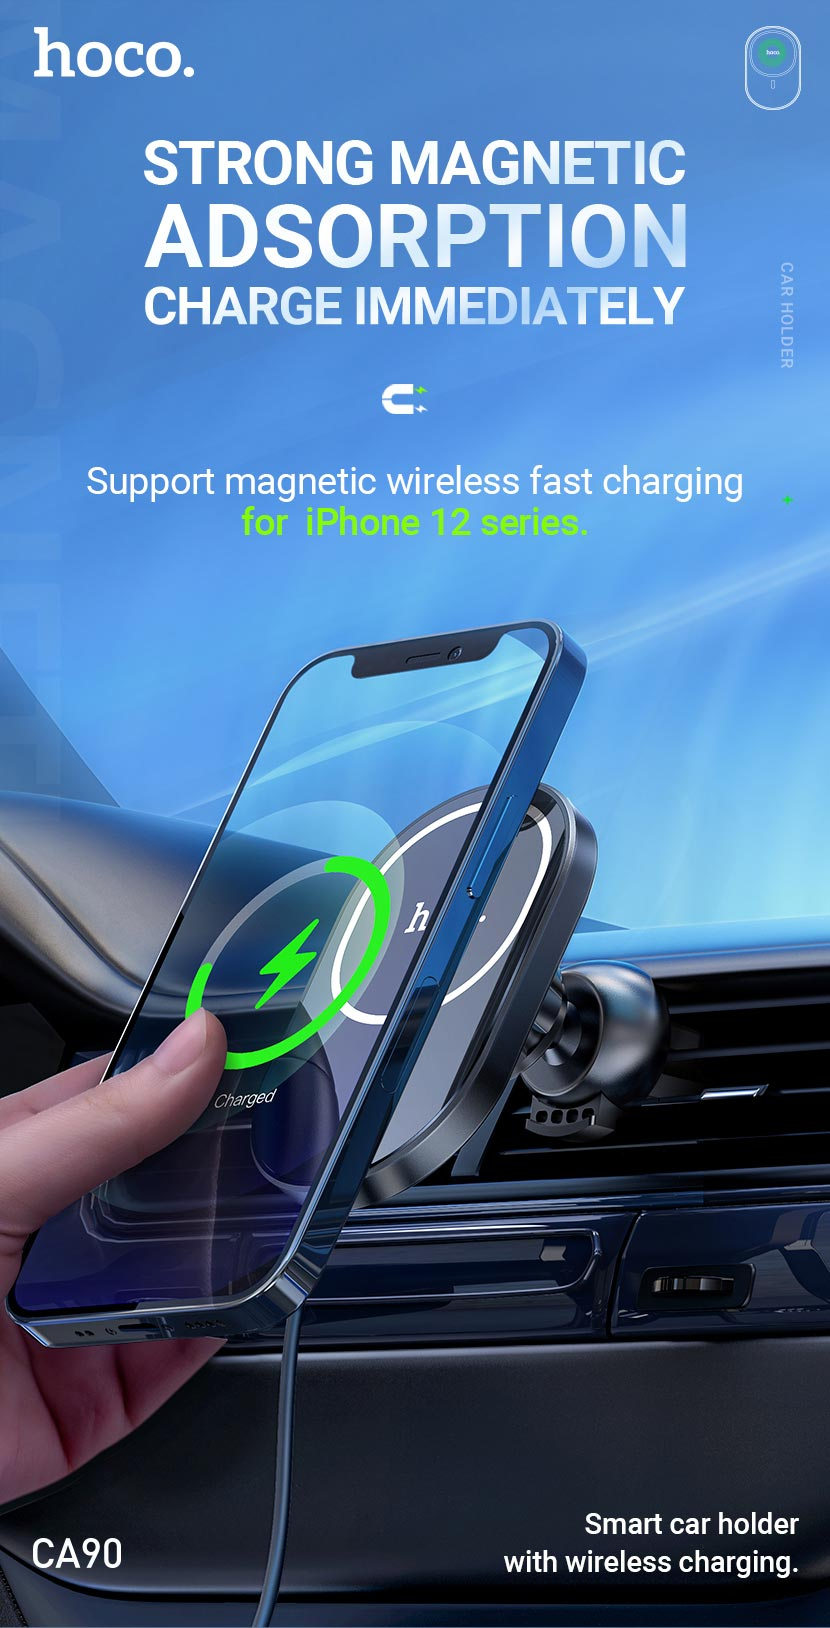 hoco news ca90 powerful magnetic car holder with wireless charging en